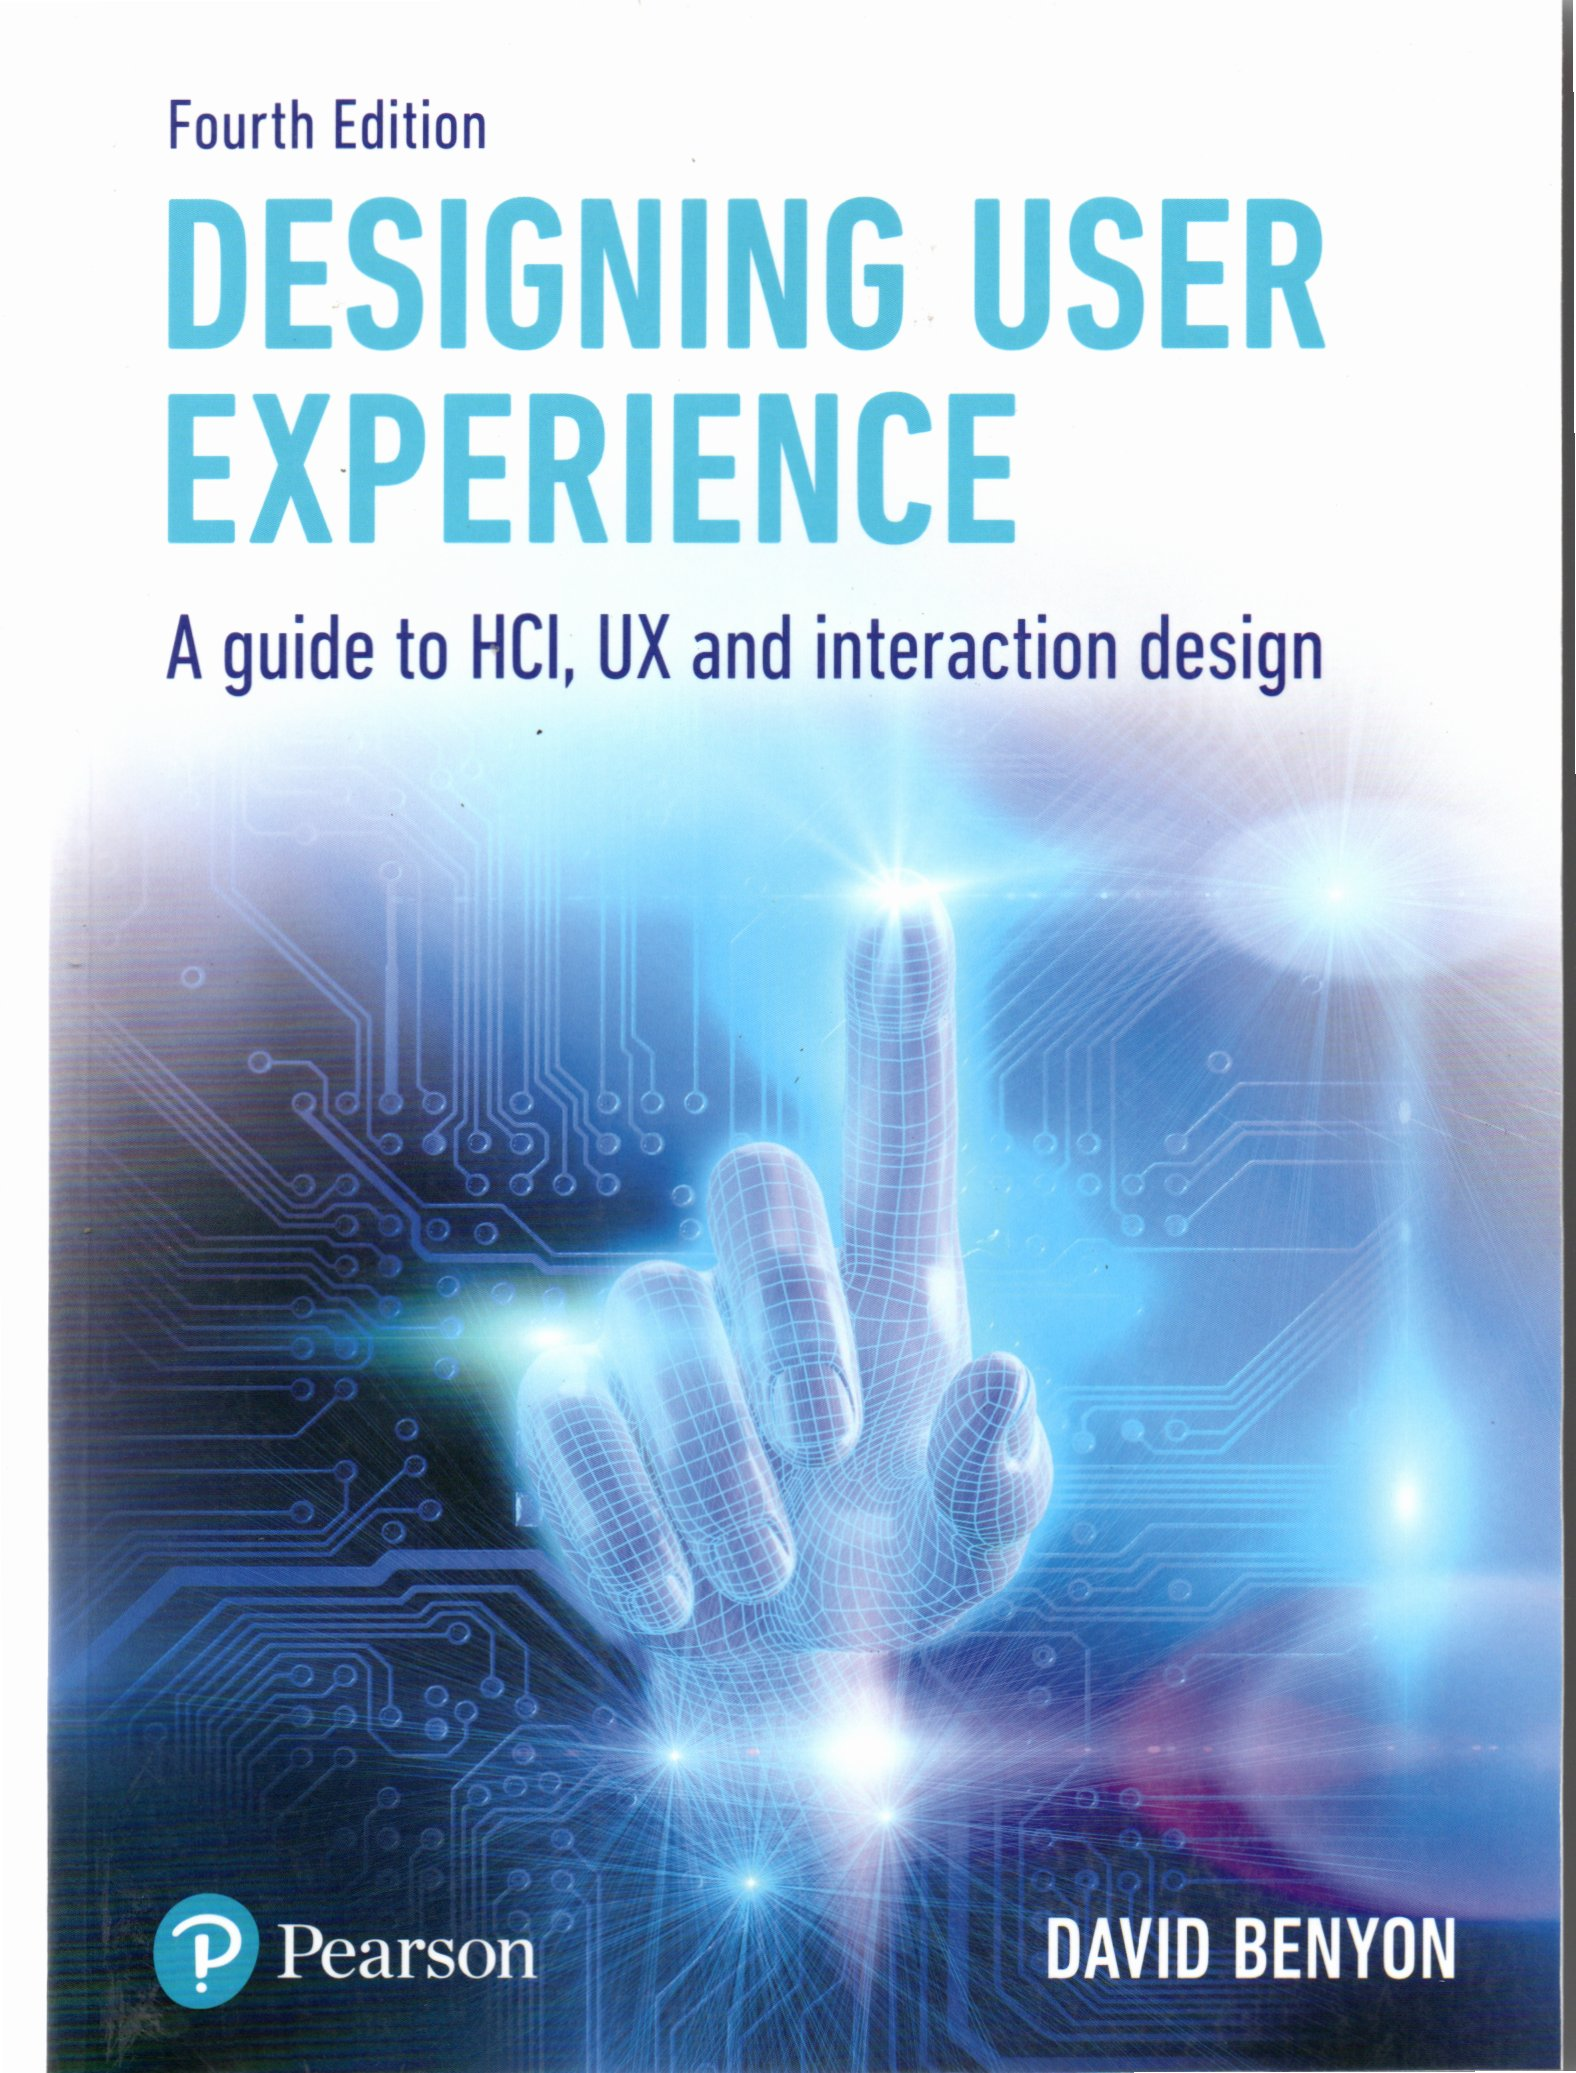 Designing user experience a guide to HCI, UX and interaction design / David Benyon